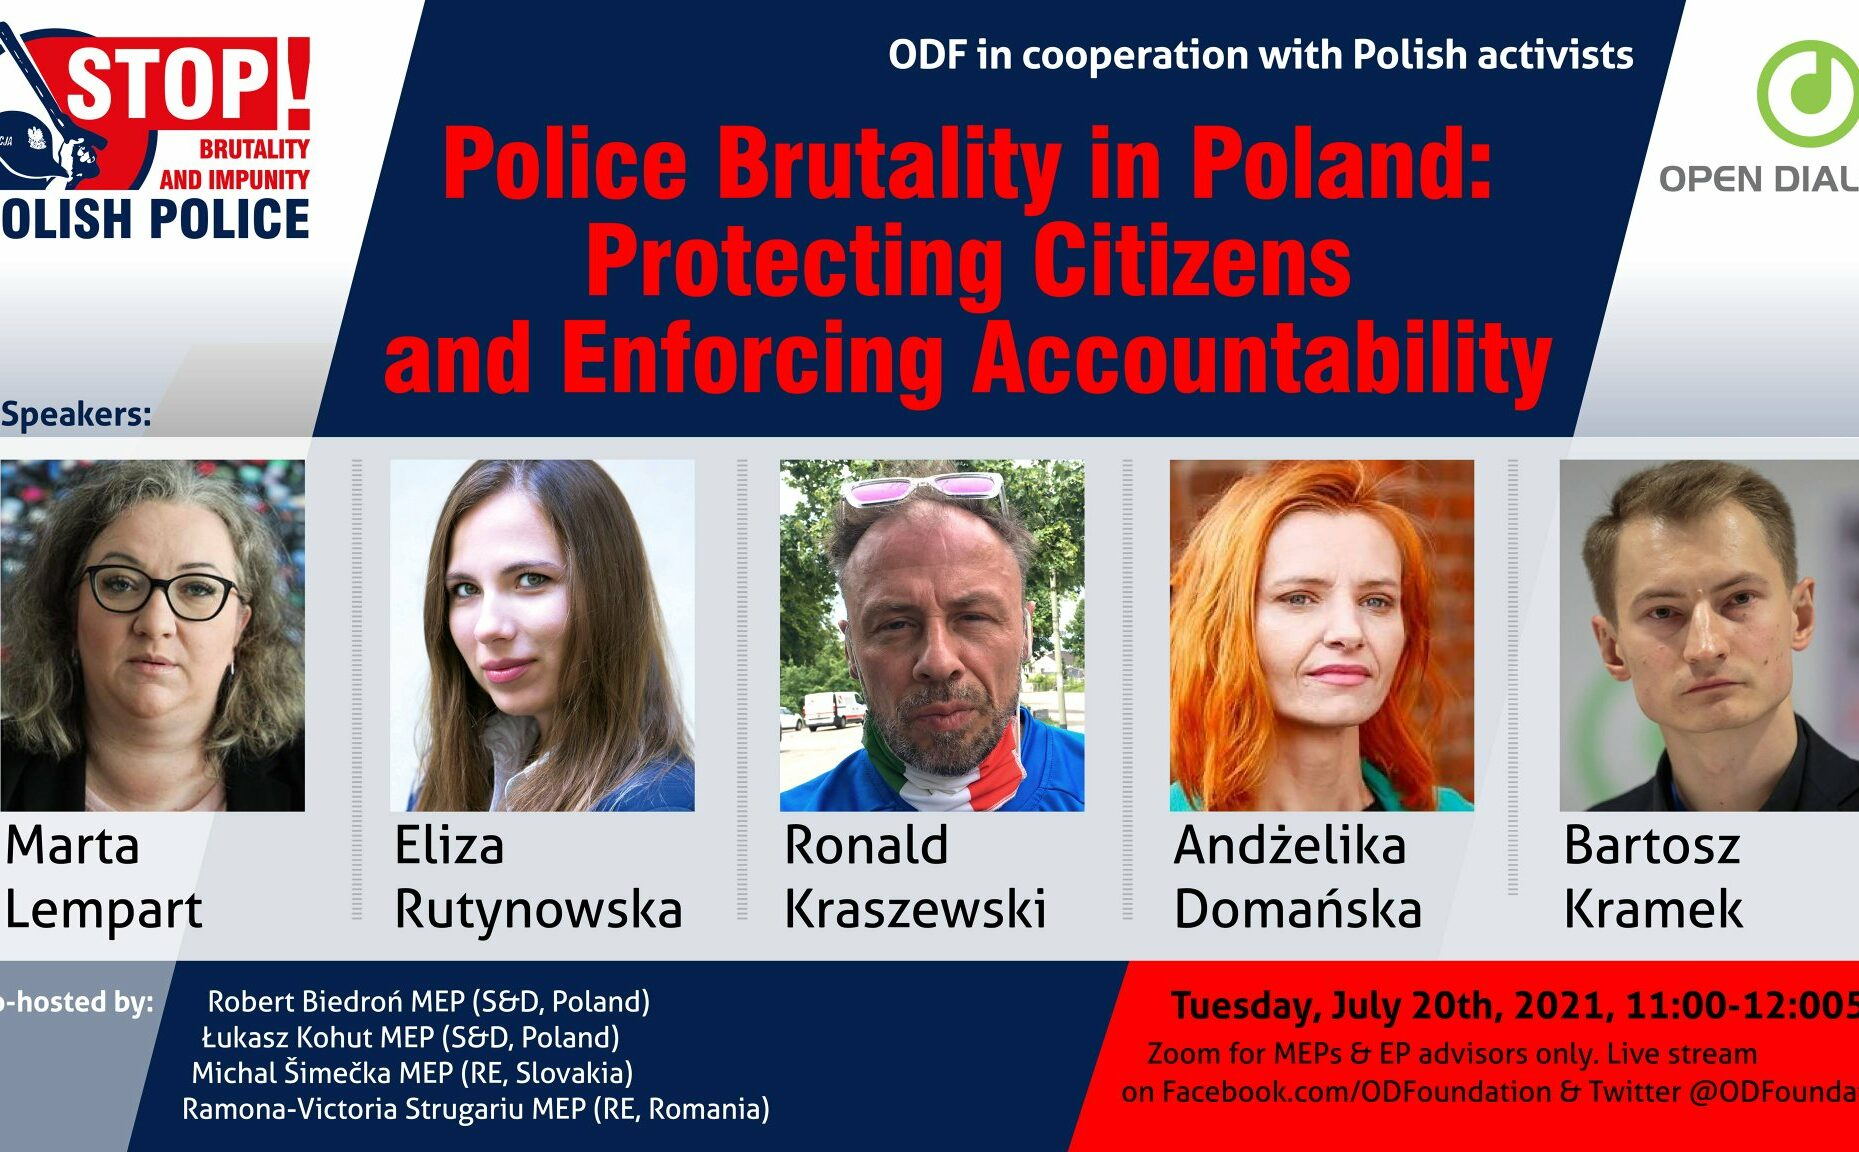 Police Brutality in Poland: Protecting Citizens and Enforcing Accountability. An online event with MEPs